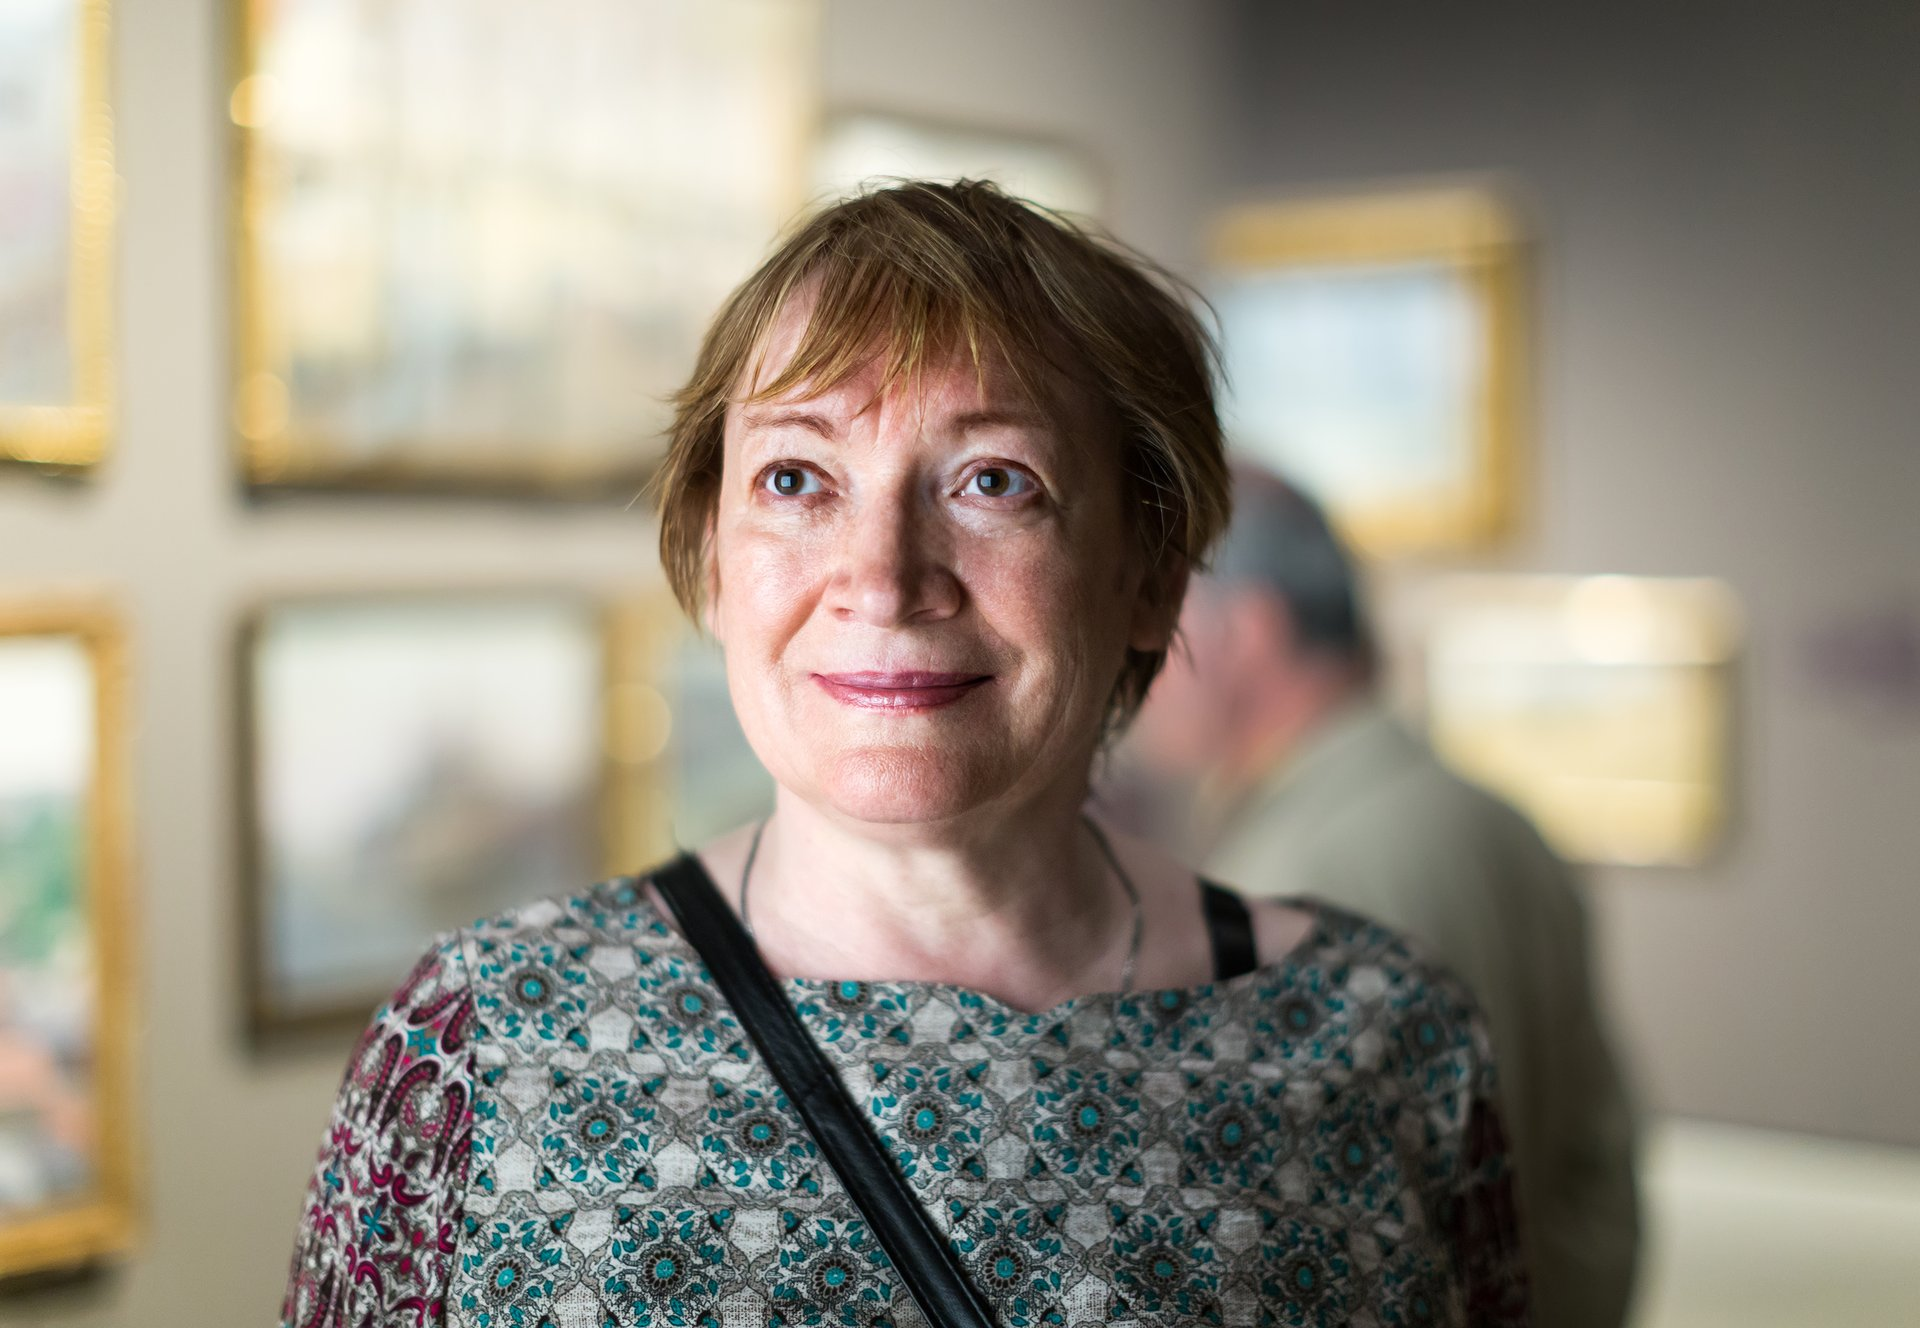 A senior woman looks at paintings in an art museum